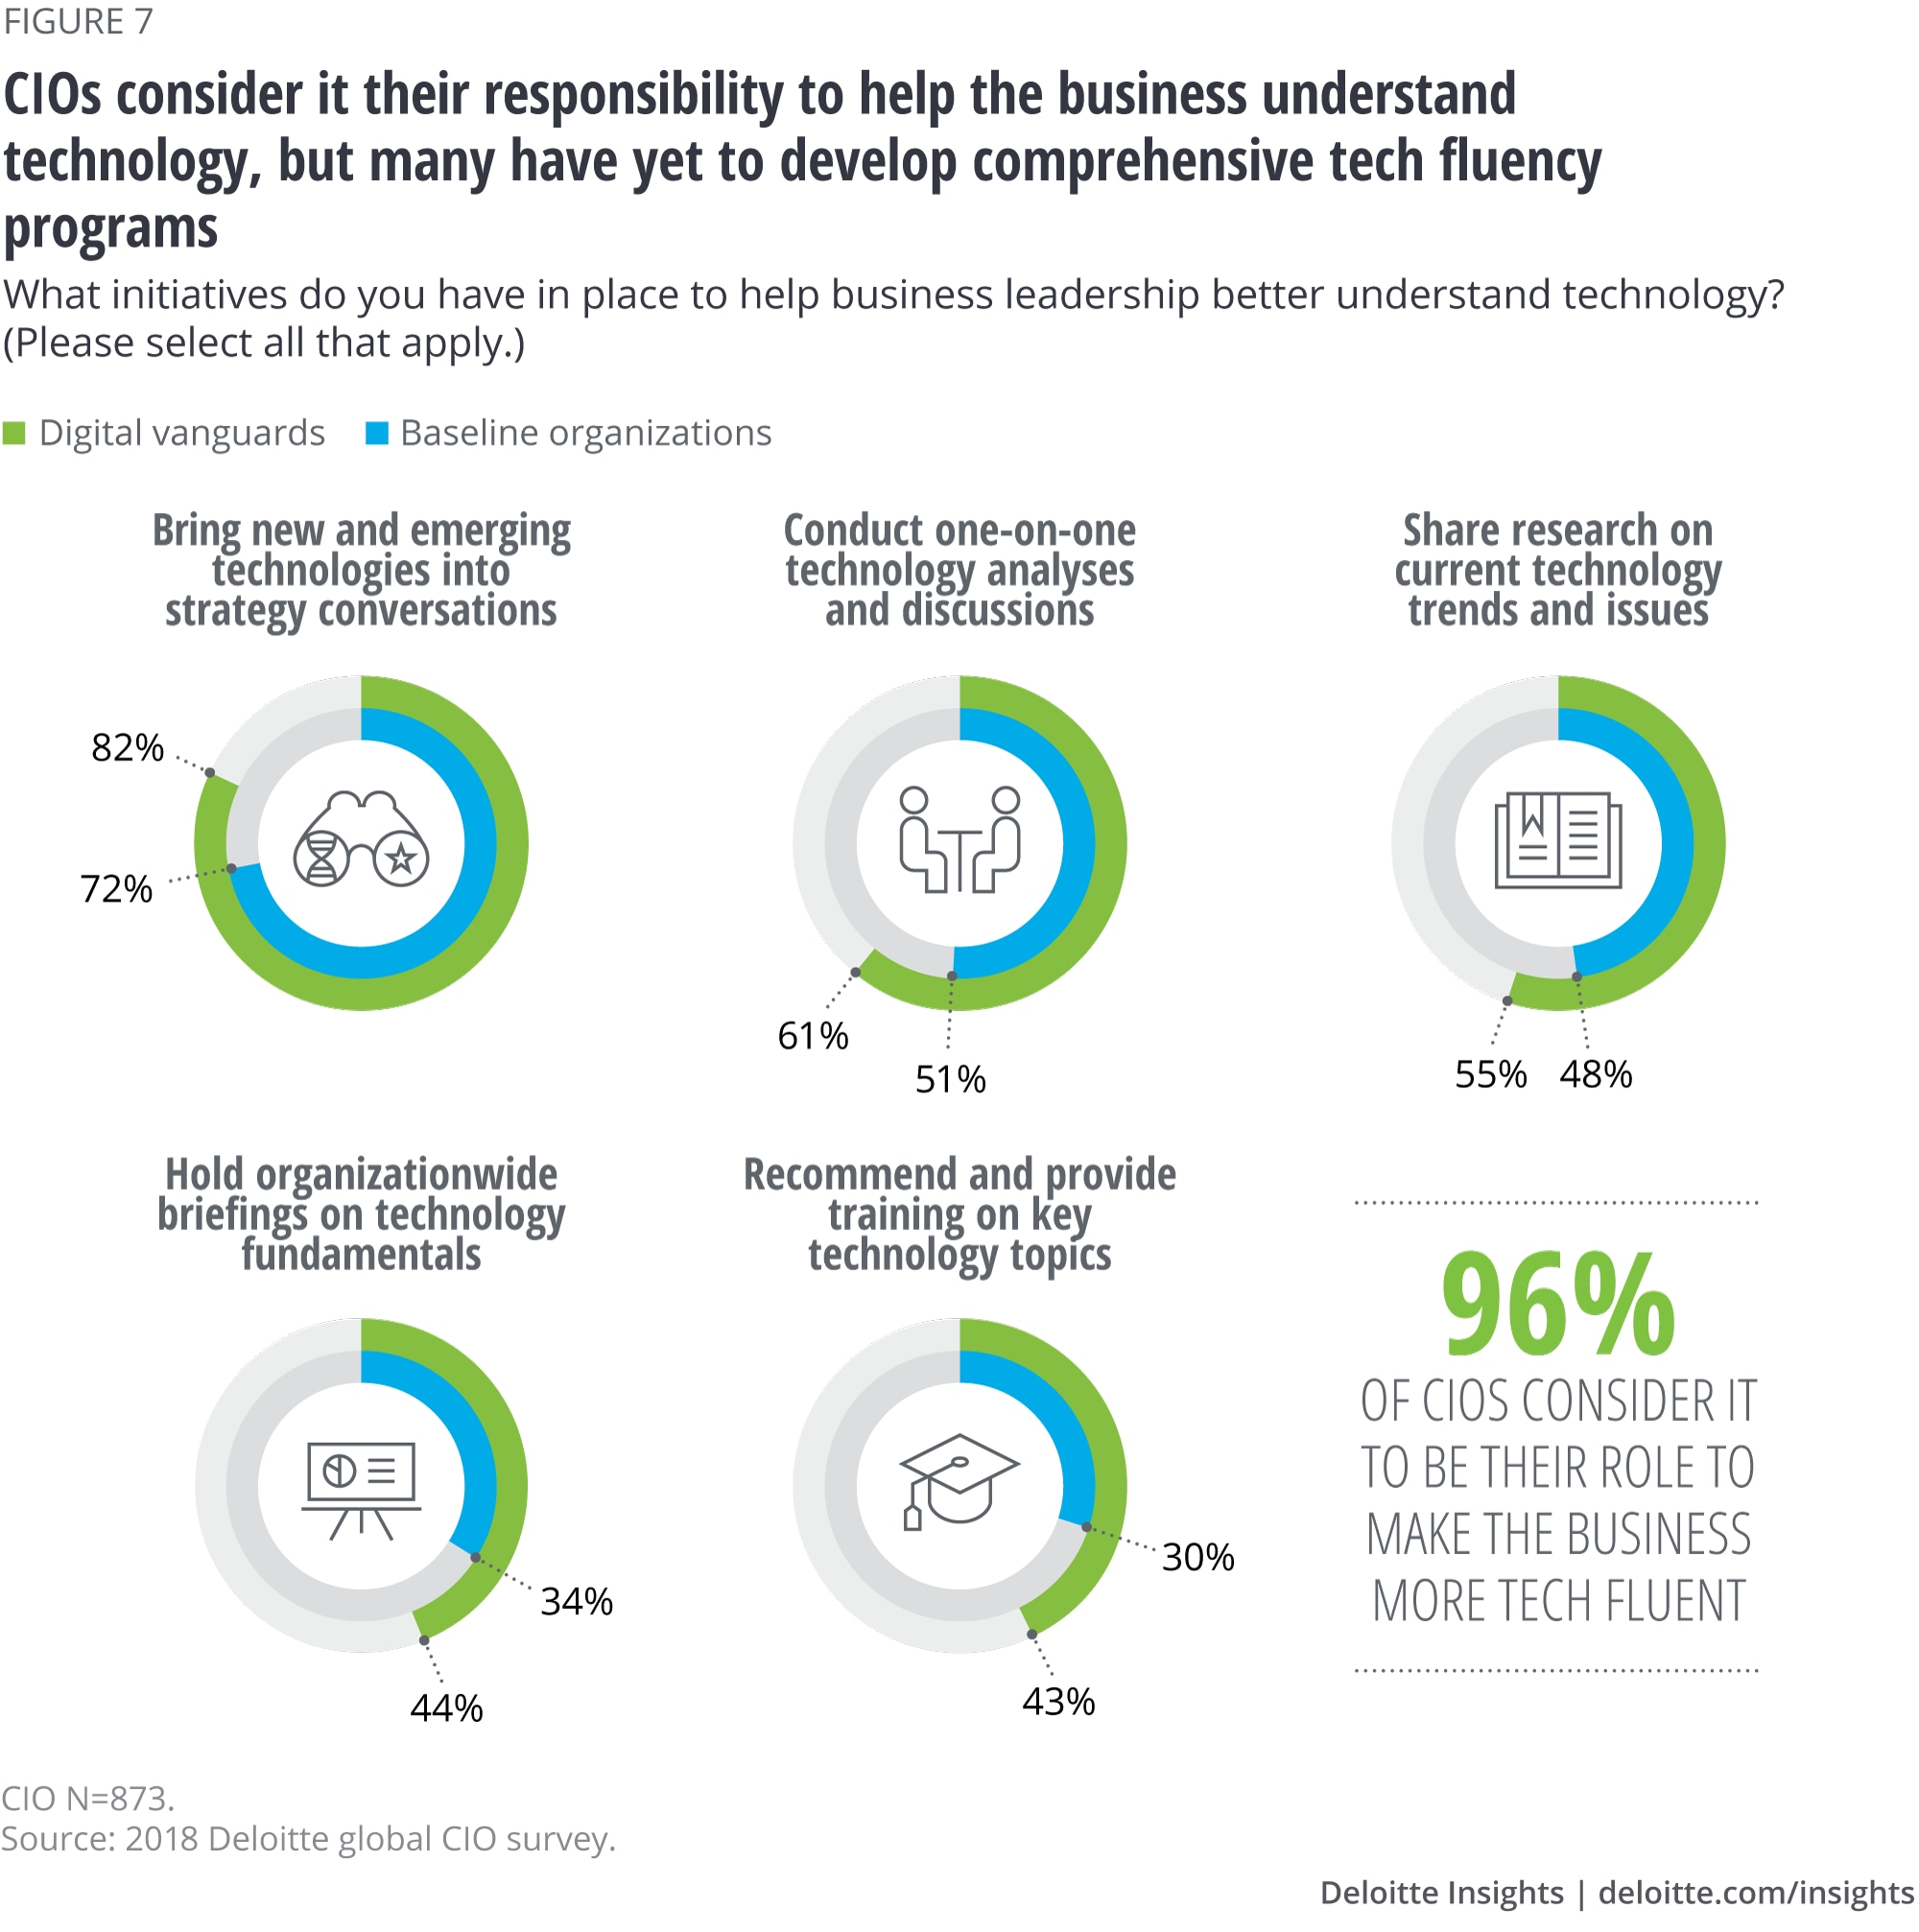 CIOs consider it their responsibility to help the business understand technology, but many have yet to develop comprehensive tech fluency programs